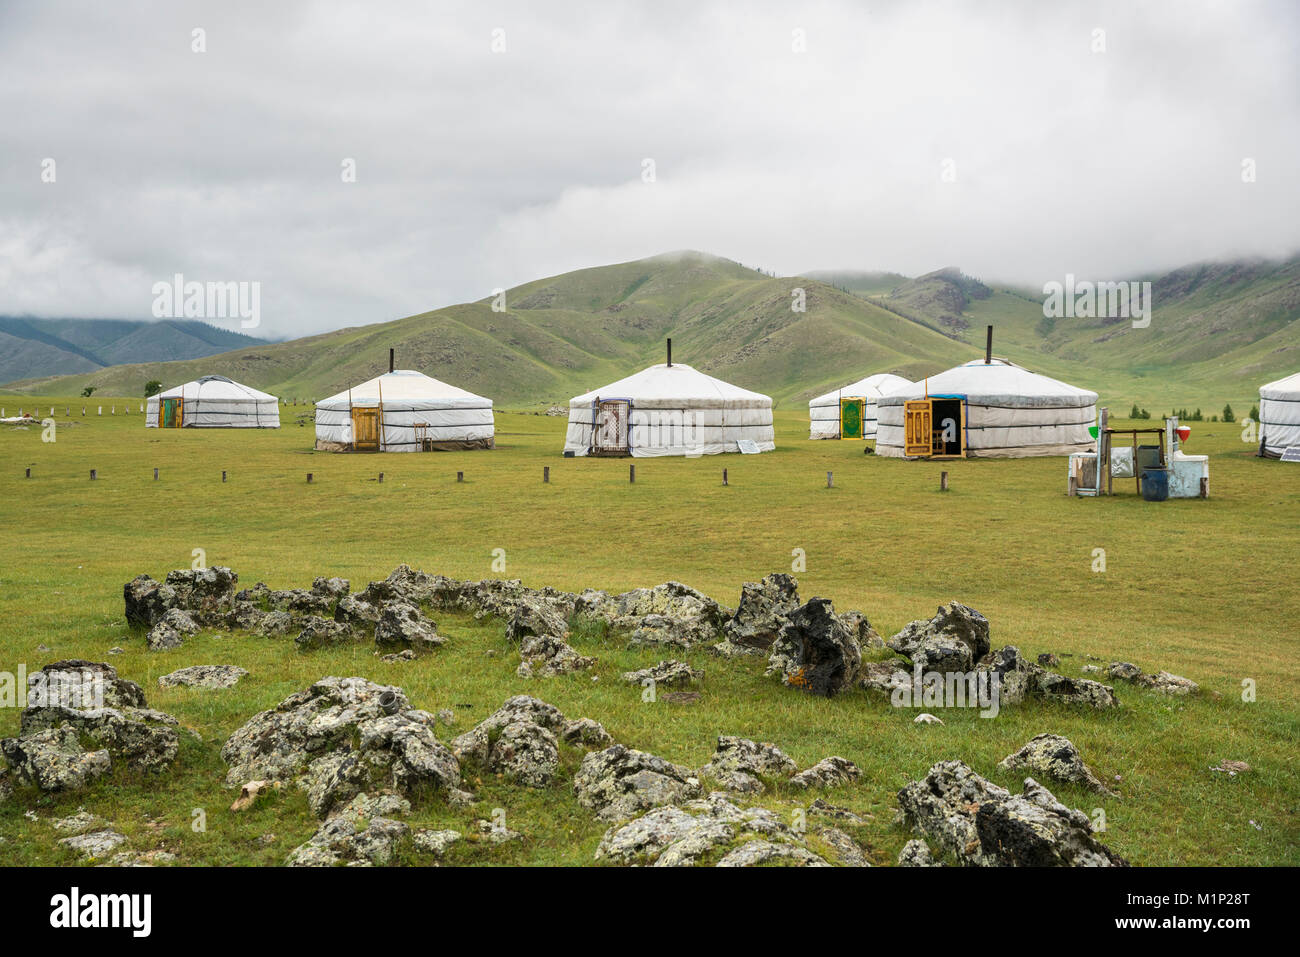 Nomadic family ger camp, Orkhon valley, South Hangay province, Mongolia, Central Asia, Asia - Stock Image